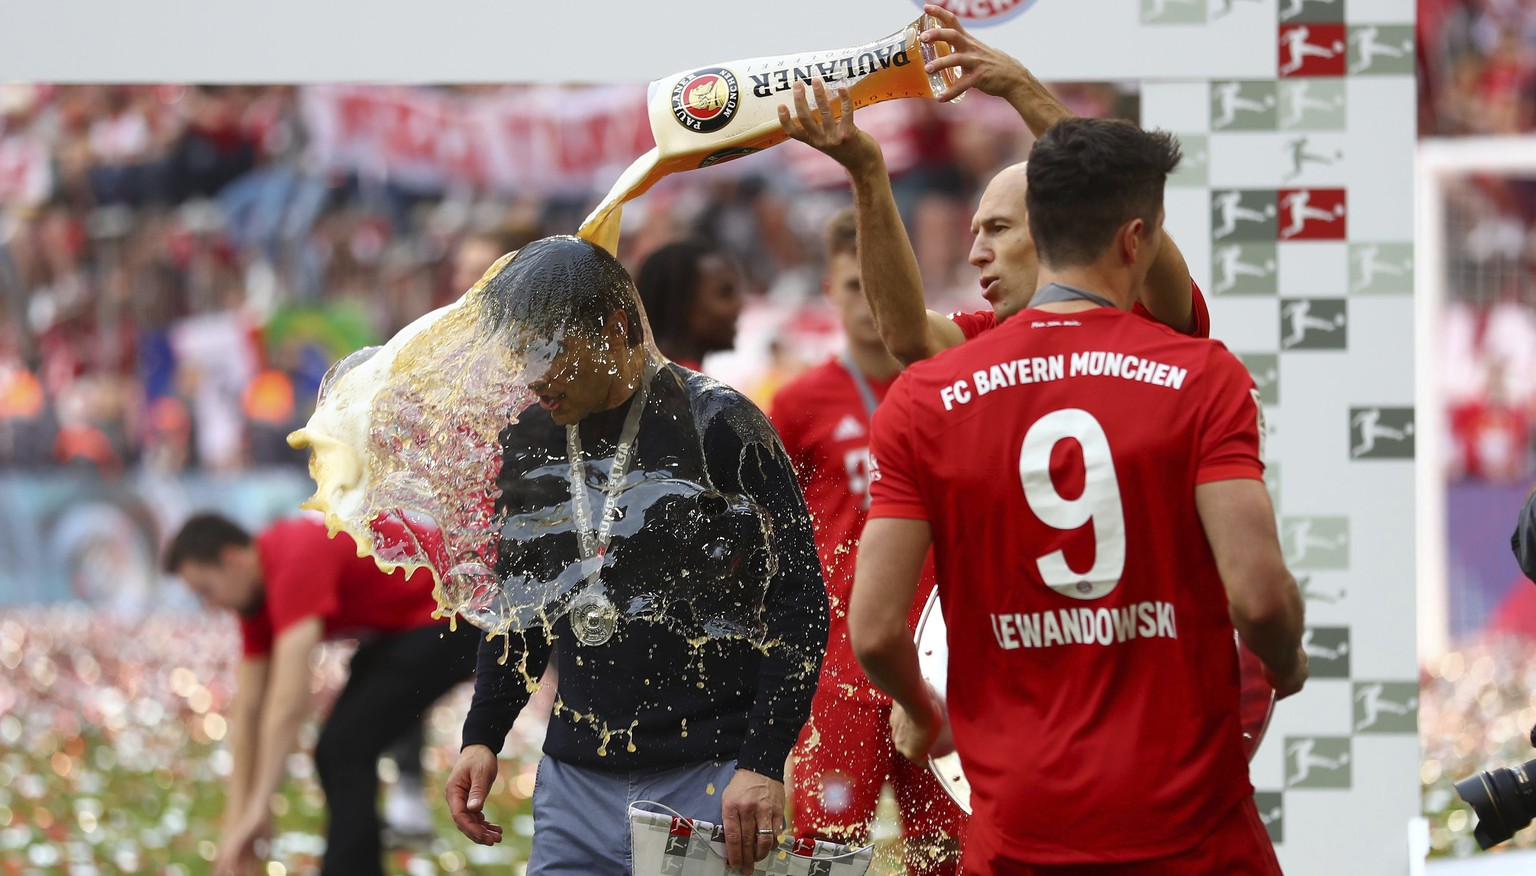 Bayern's Arjen Robben pours beer over coach Niko Kovac to celebrate Bayern's 7th straight Bundesliga title after the German Soccer Bundesliga match between FC Bayern Munich and Eintracht Frankfurt in Munich, Germany, Saturday, May 18, 2019. (AP Photo/Matthias Schrader)